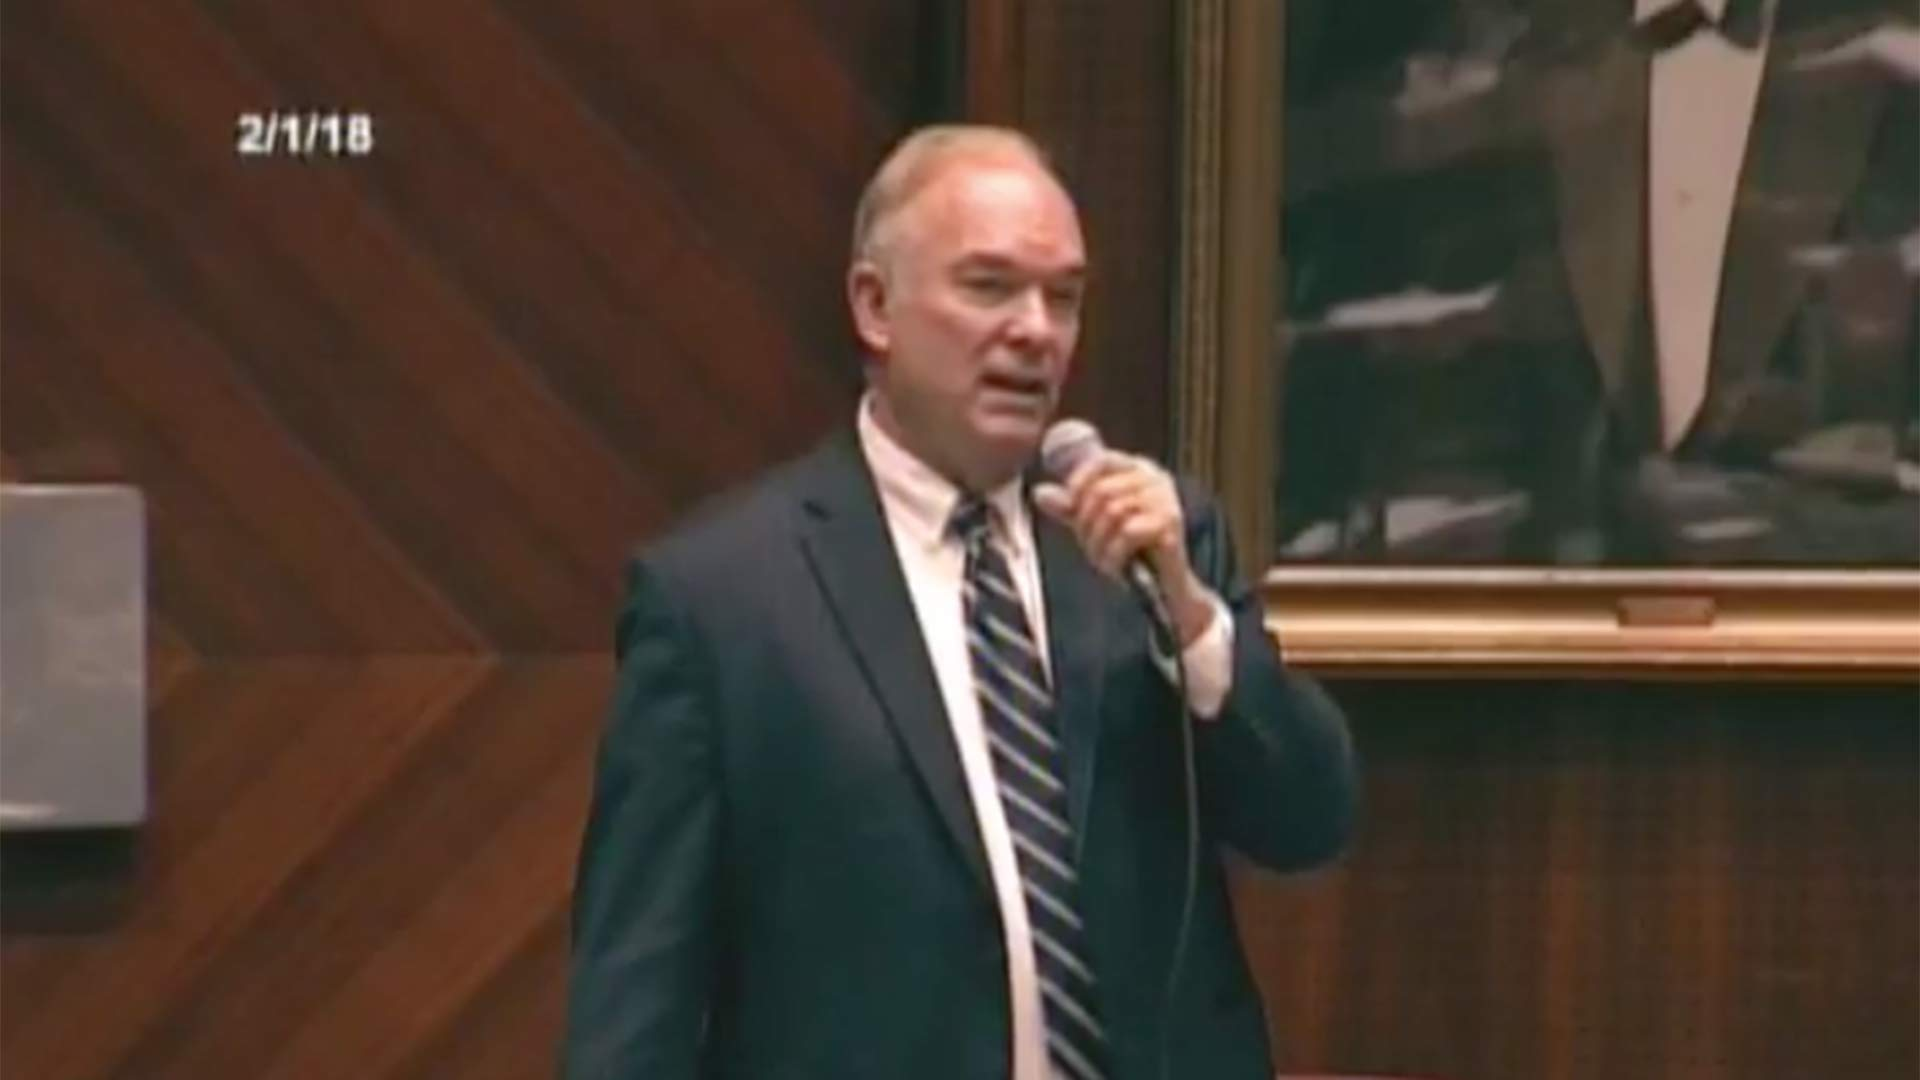 Don Shooter speaks prior to a vote on the Arizona House floor that led to his expulsion from the Legislature, Feb. 1, 2018